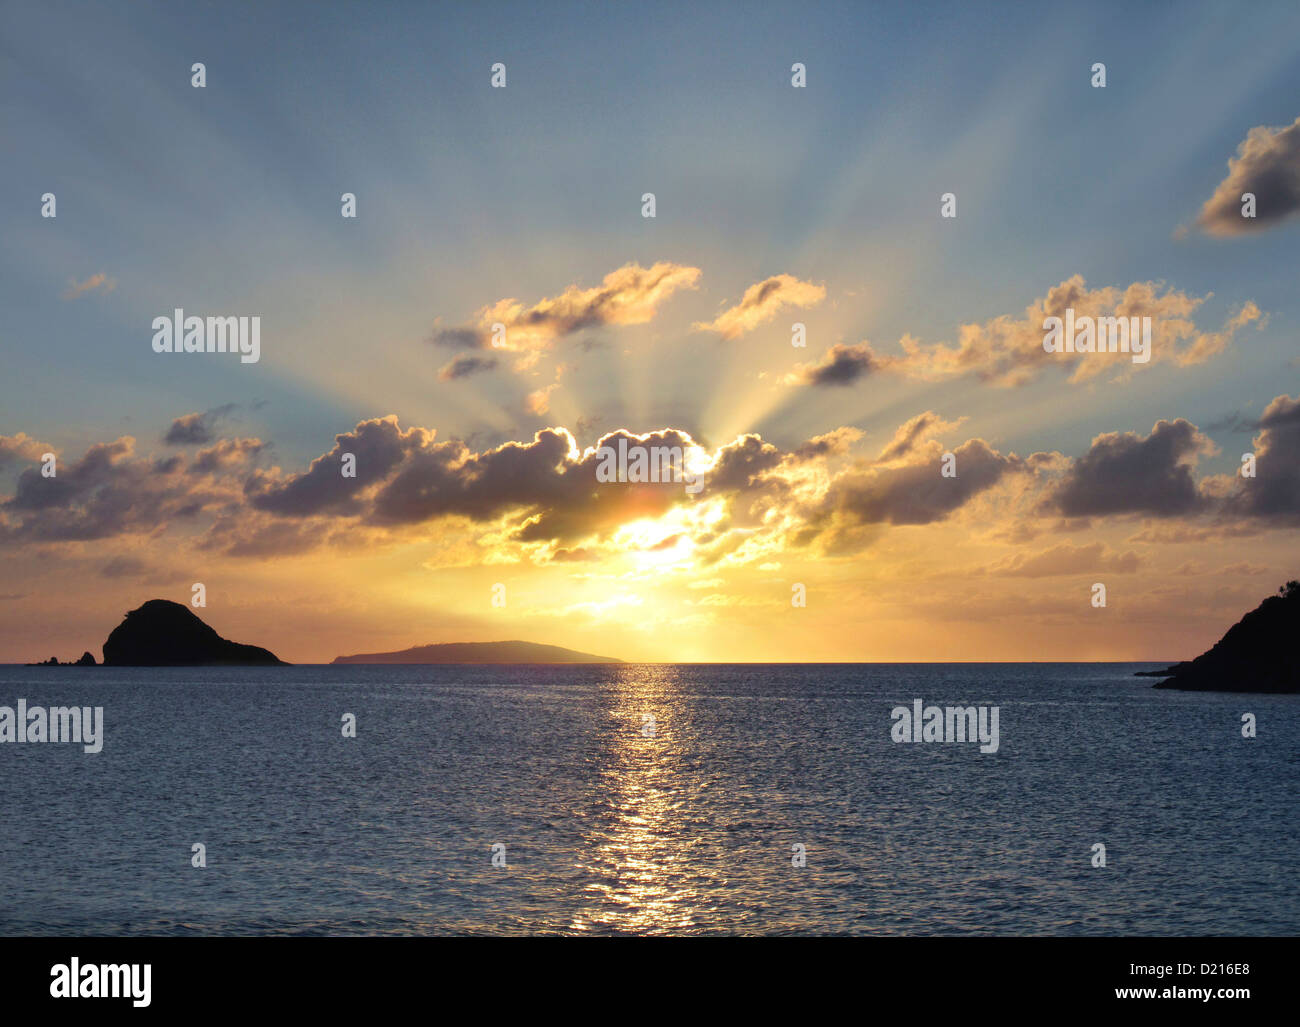 Sunset above the sea, Camarines Norte, Luzon, Philippines, Asia - Stock Image